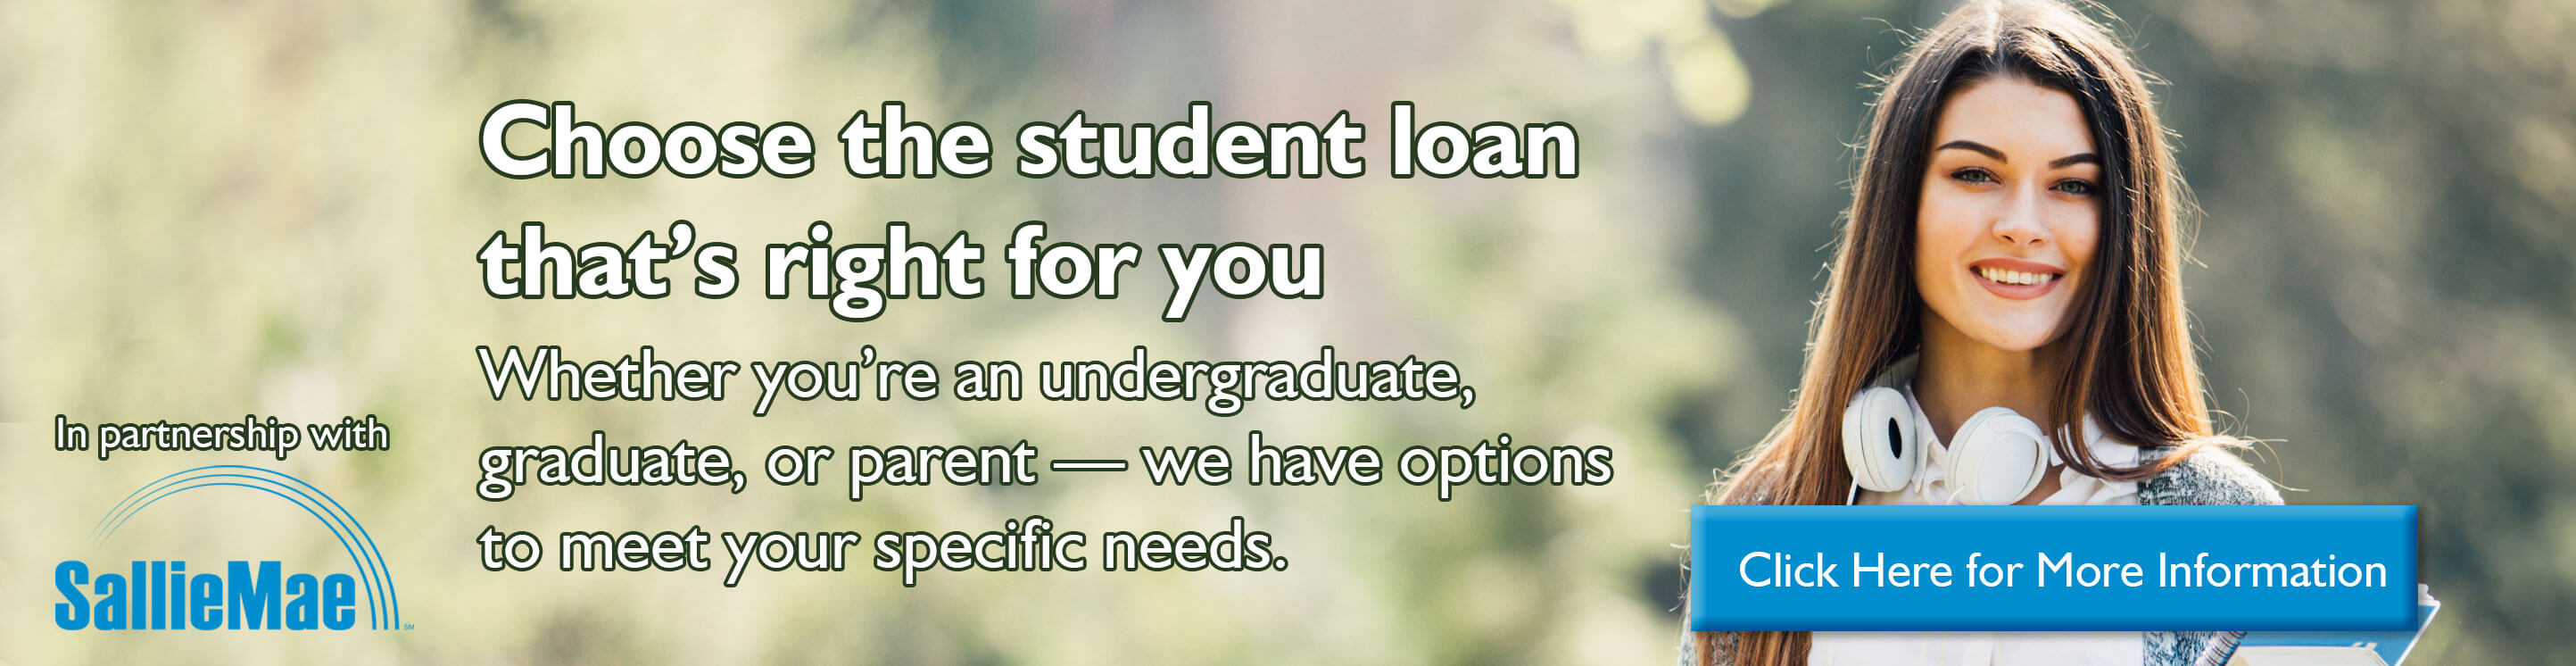 Choose the student loan that's right for you. Whether you're an undergraduate, graduate, or parent - we have options to meet your specific needs. View our student loan options with our partner Sallie Mae.